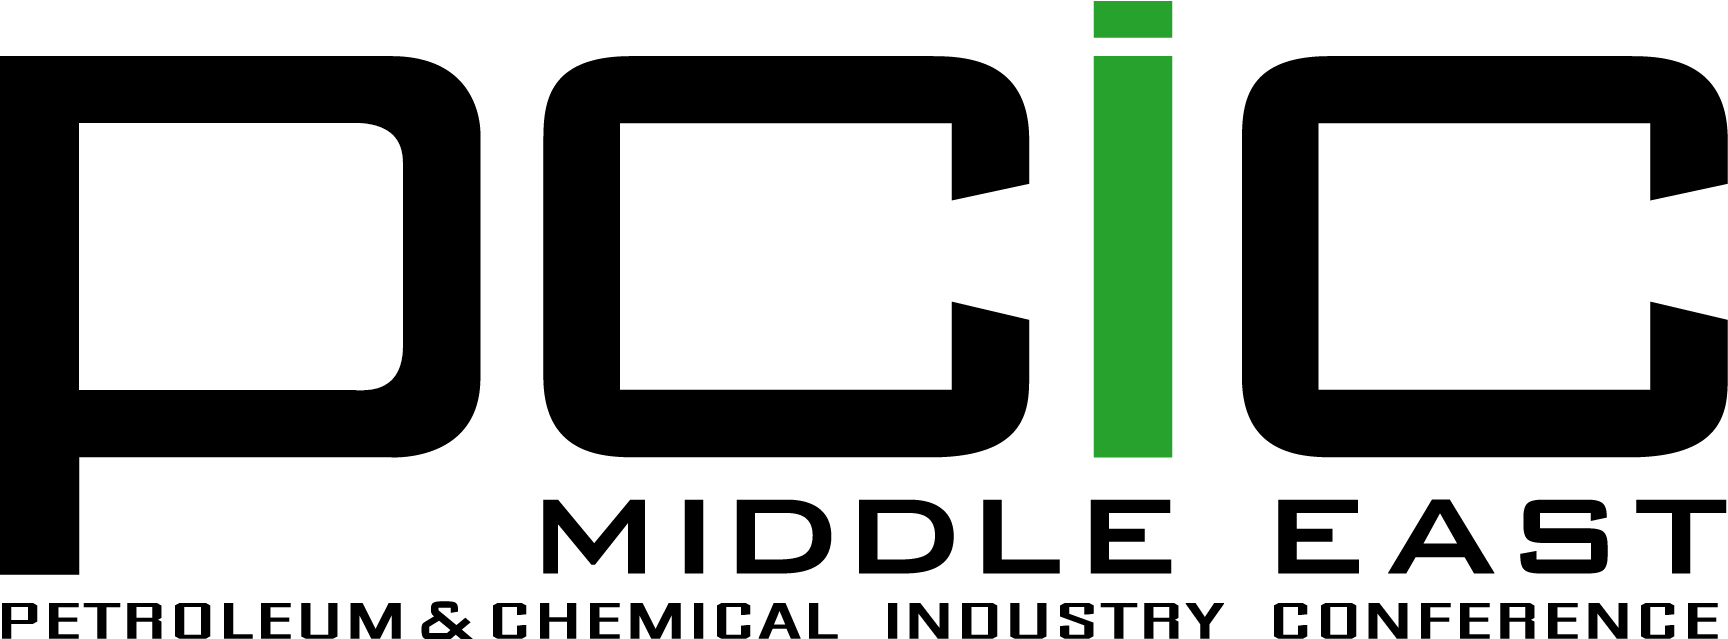 PCIC_Middle_East_Logo_conference